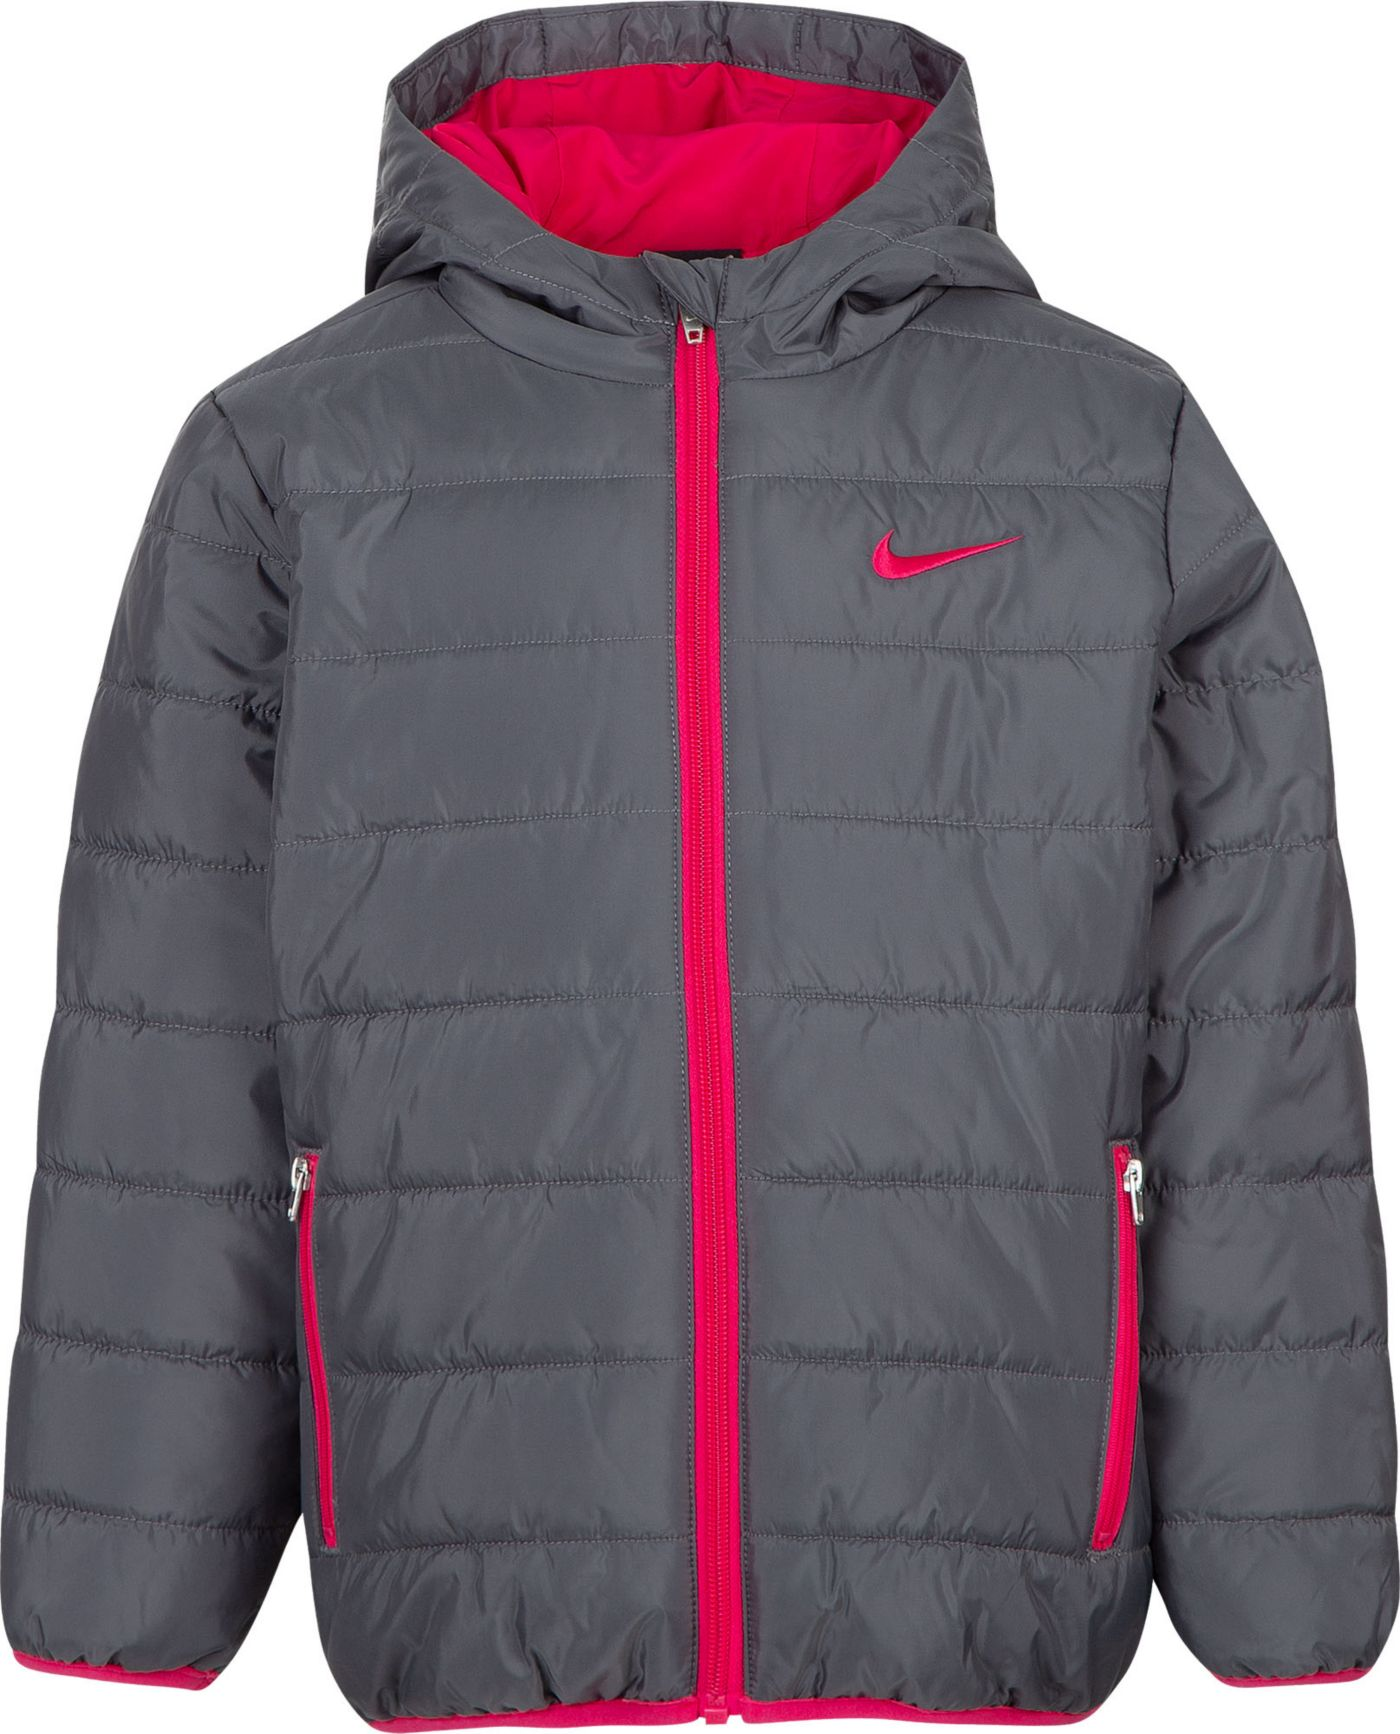 Nike Girls' Polyfill Quilted Insulated Puffer Jacket